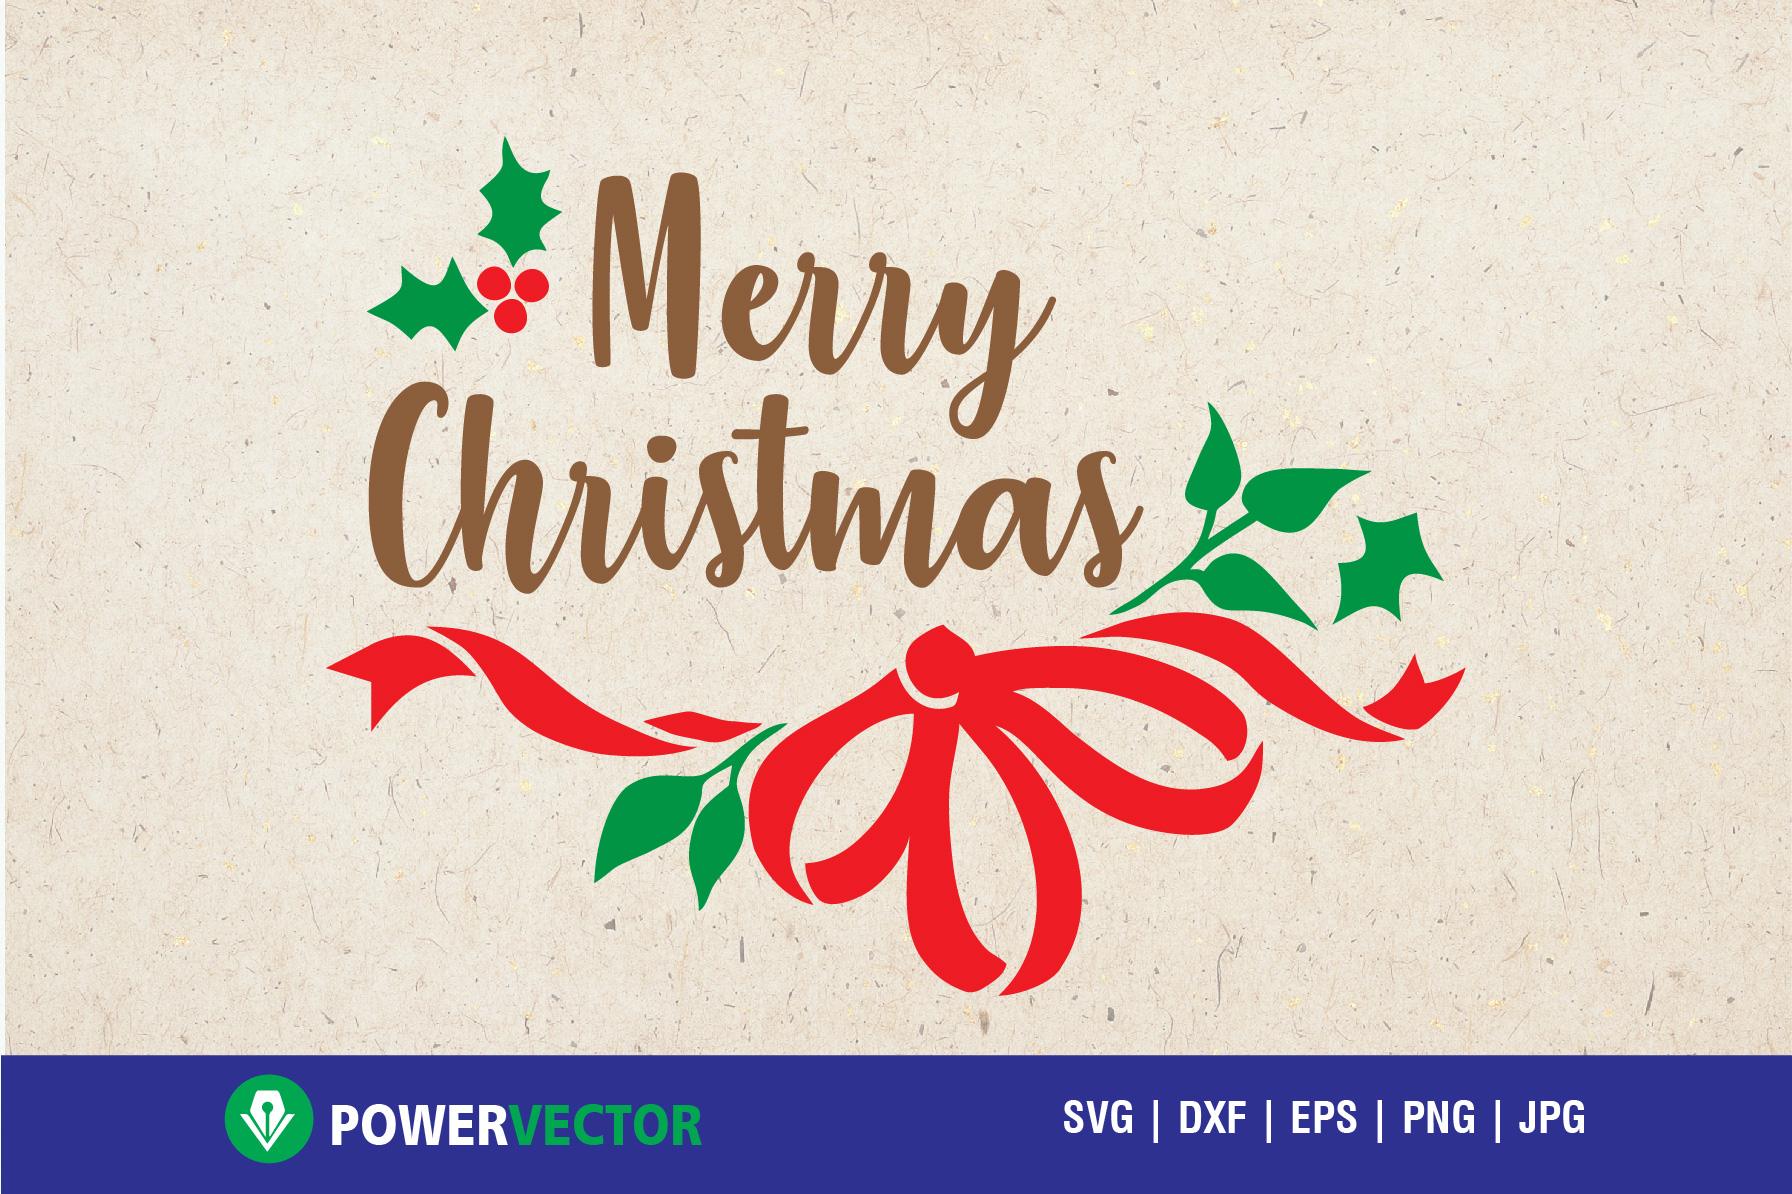 Download Free Merry Christmas Svg Greeting Card Grafik Von Powervector for Cricut Explore, Silhouette and other cutting machines.